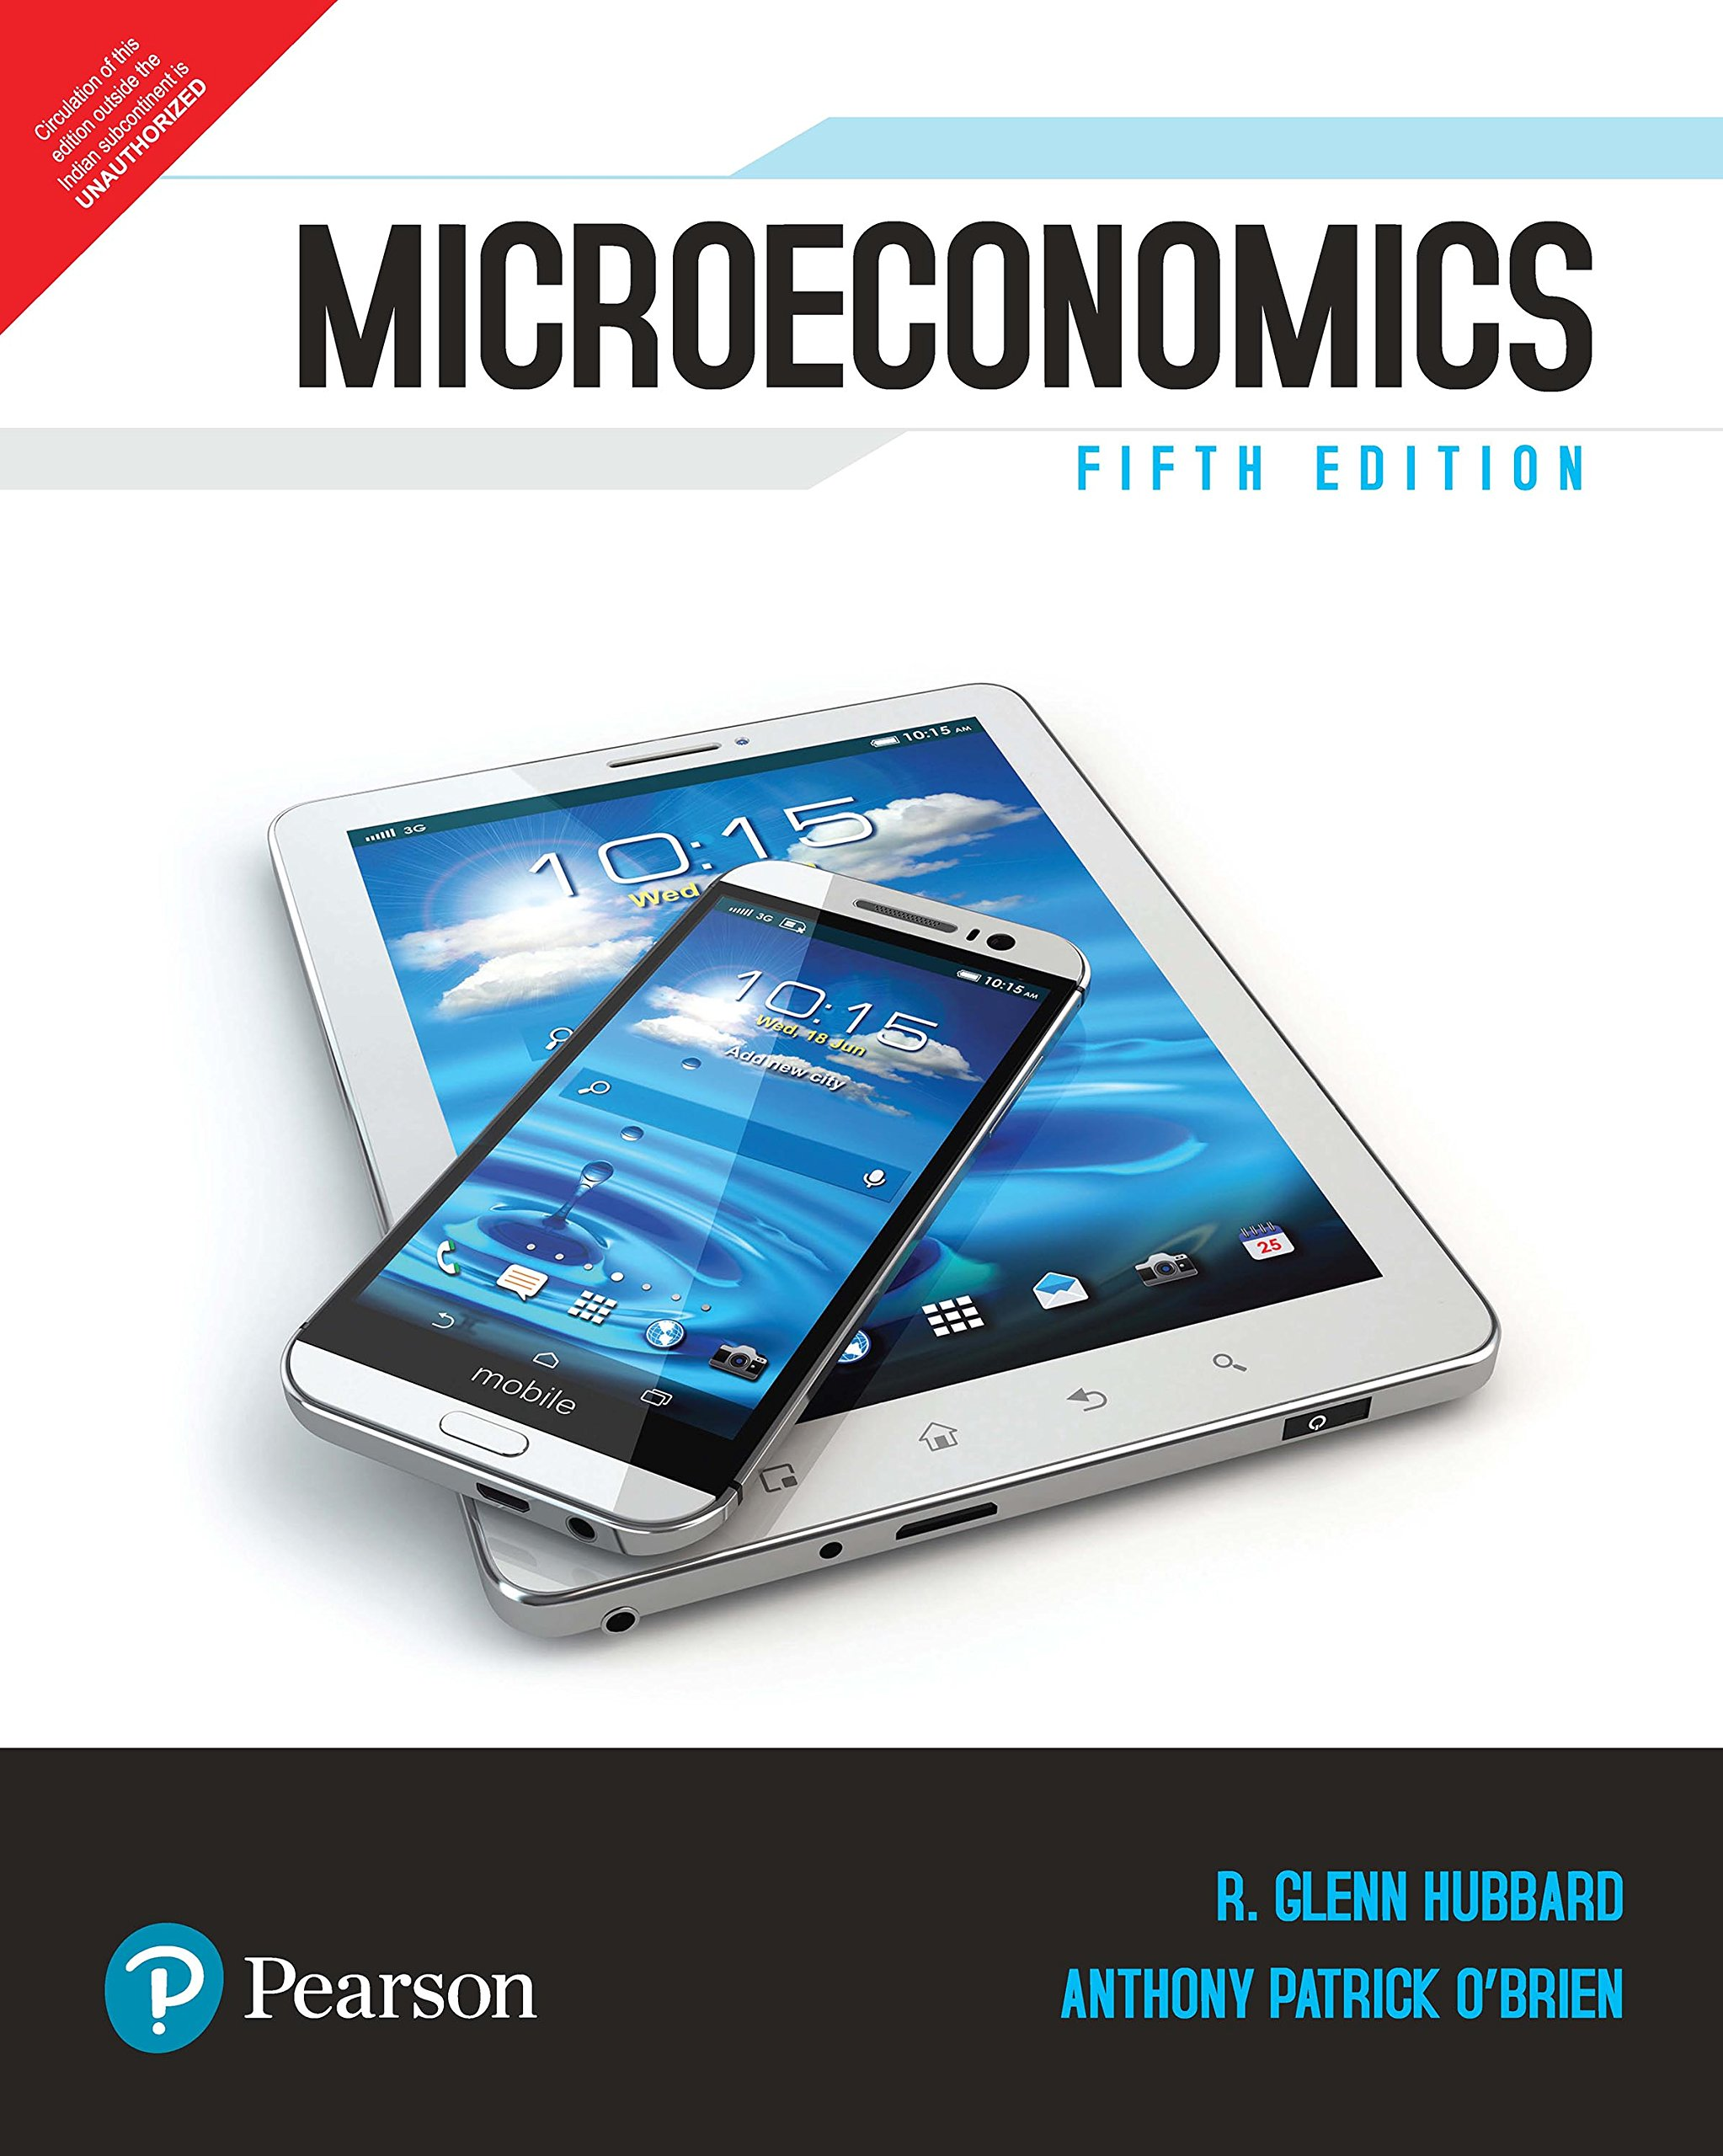 Microeconomics 5th edition hubbard obrien mic 1245454541450 microeconomics 5th edition hubbard obrien mic 1245454541450 amazon books fandeluxe Choice Image